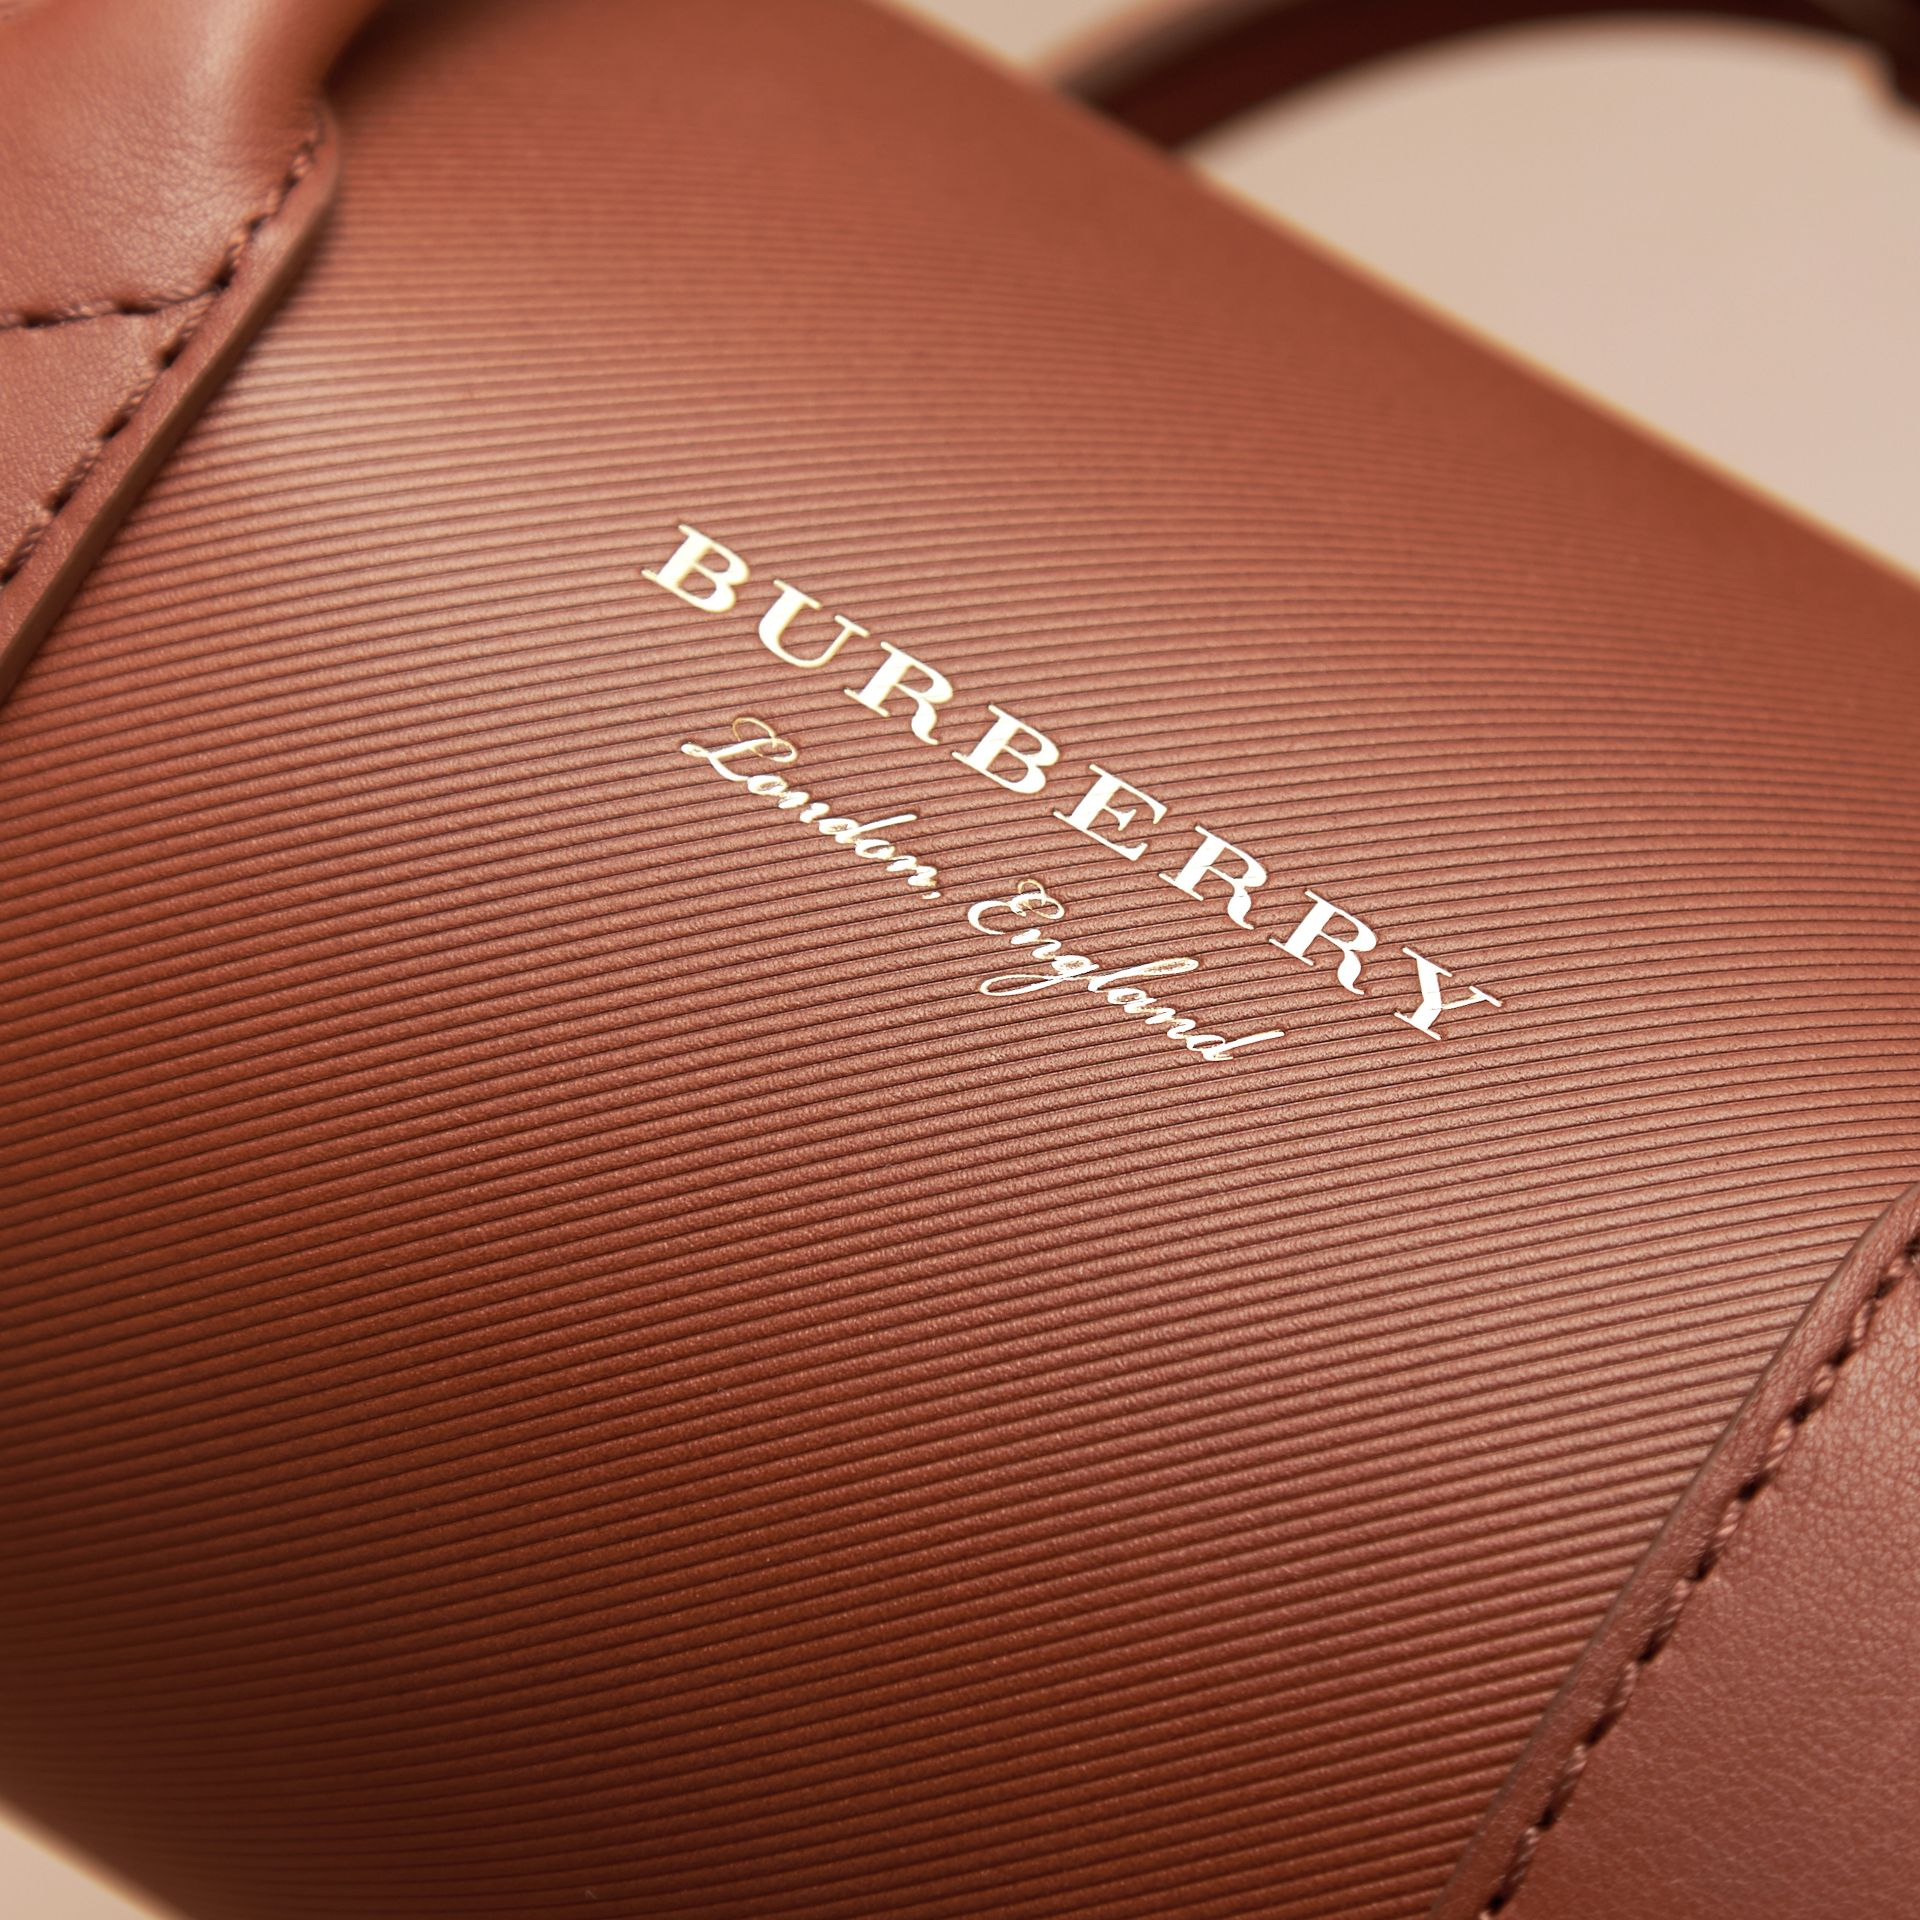 The Small DK88 Barrel Bag in Tan - Women | Burberry United States - gallery image 4